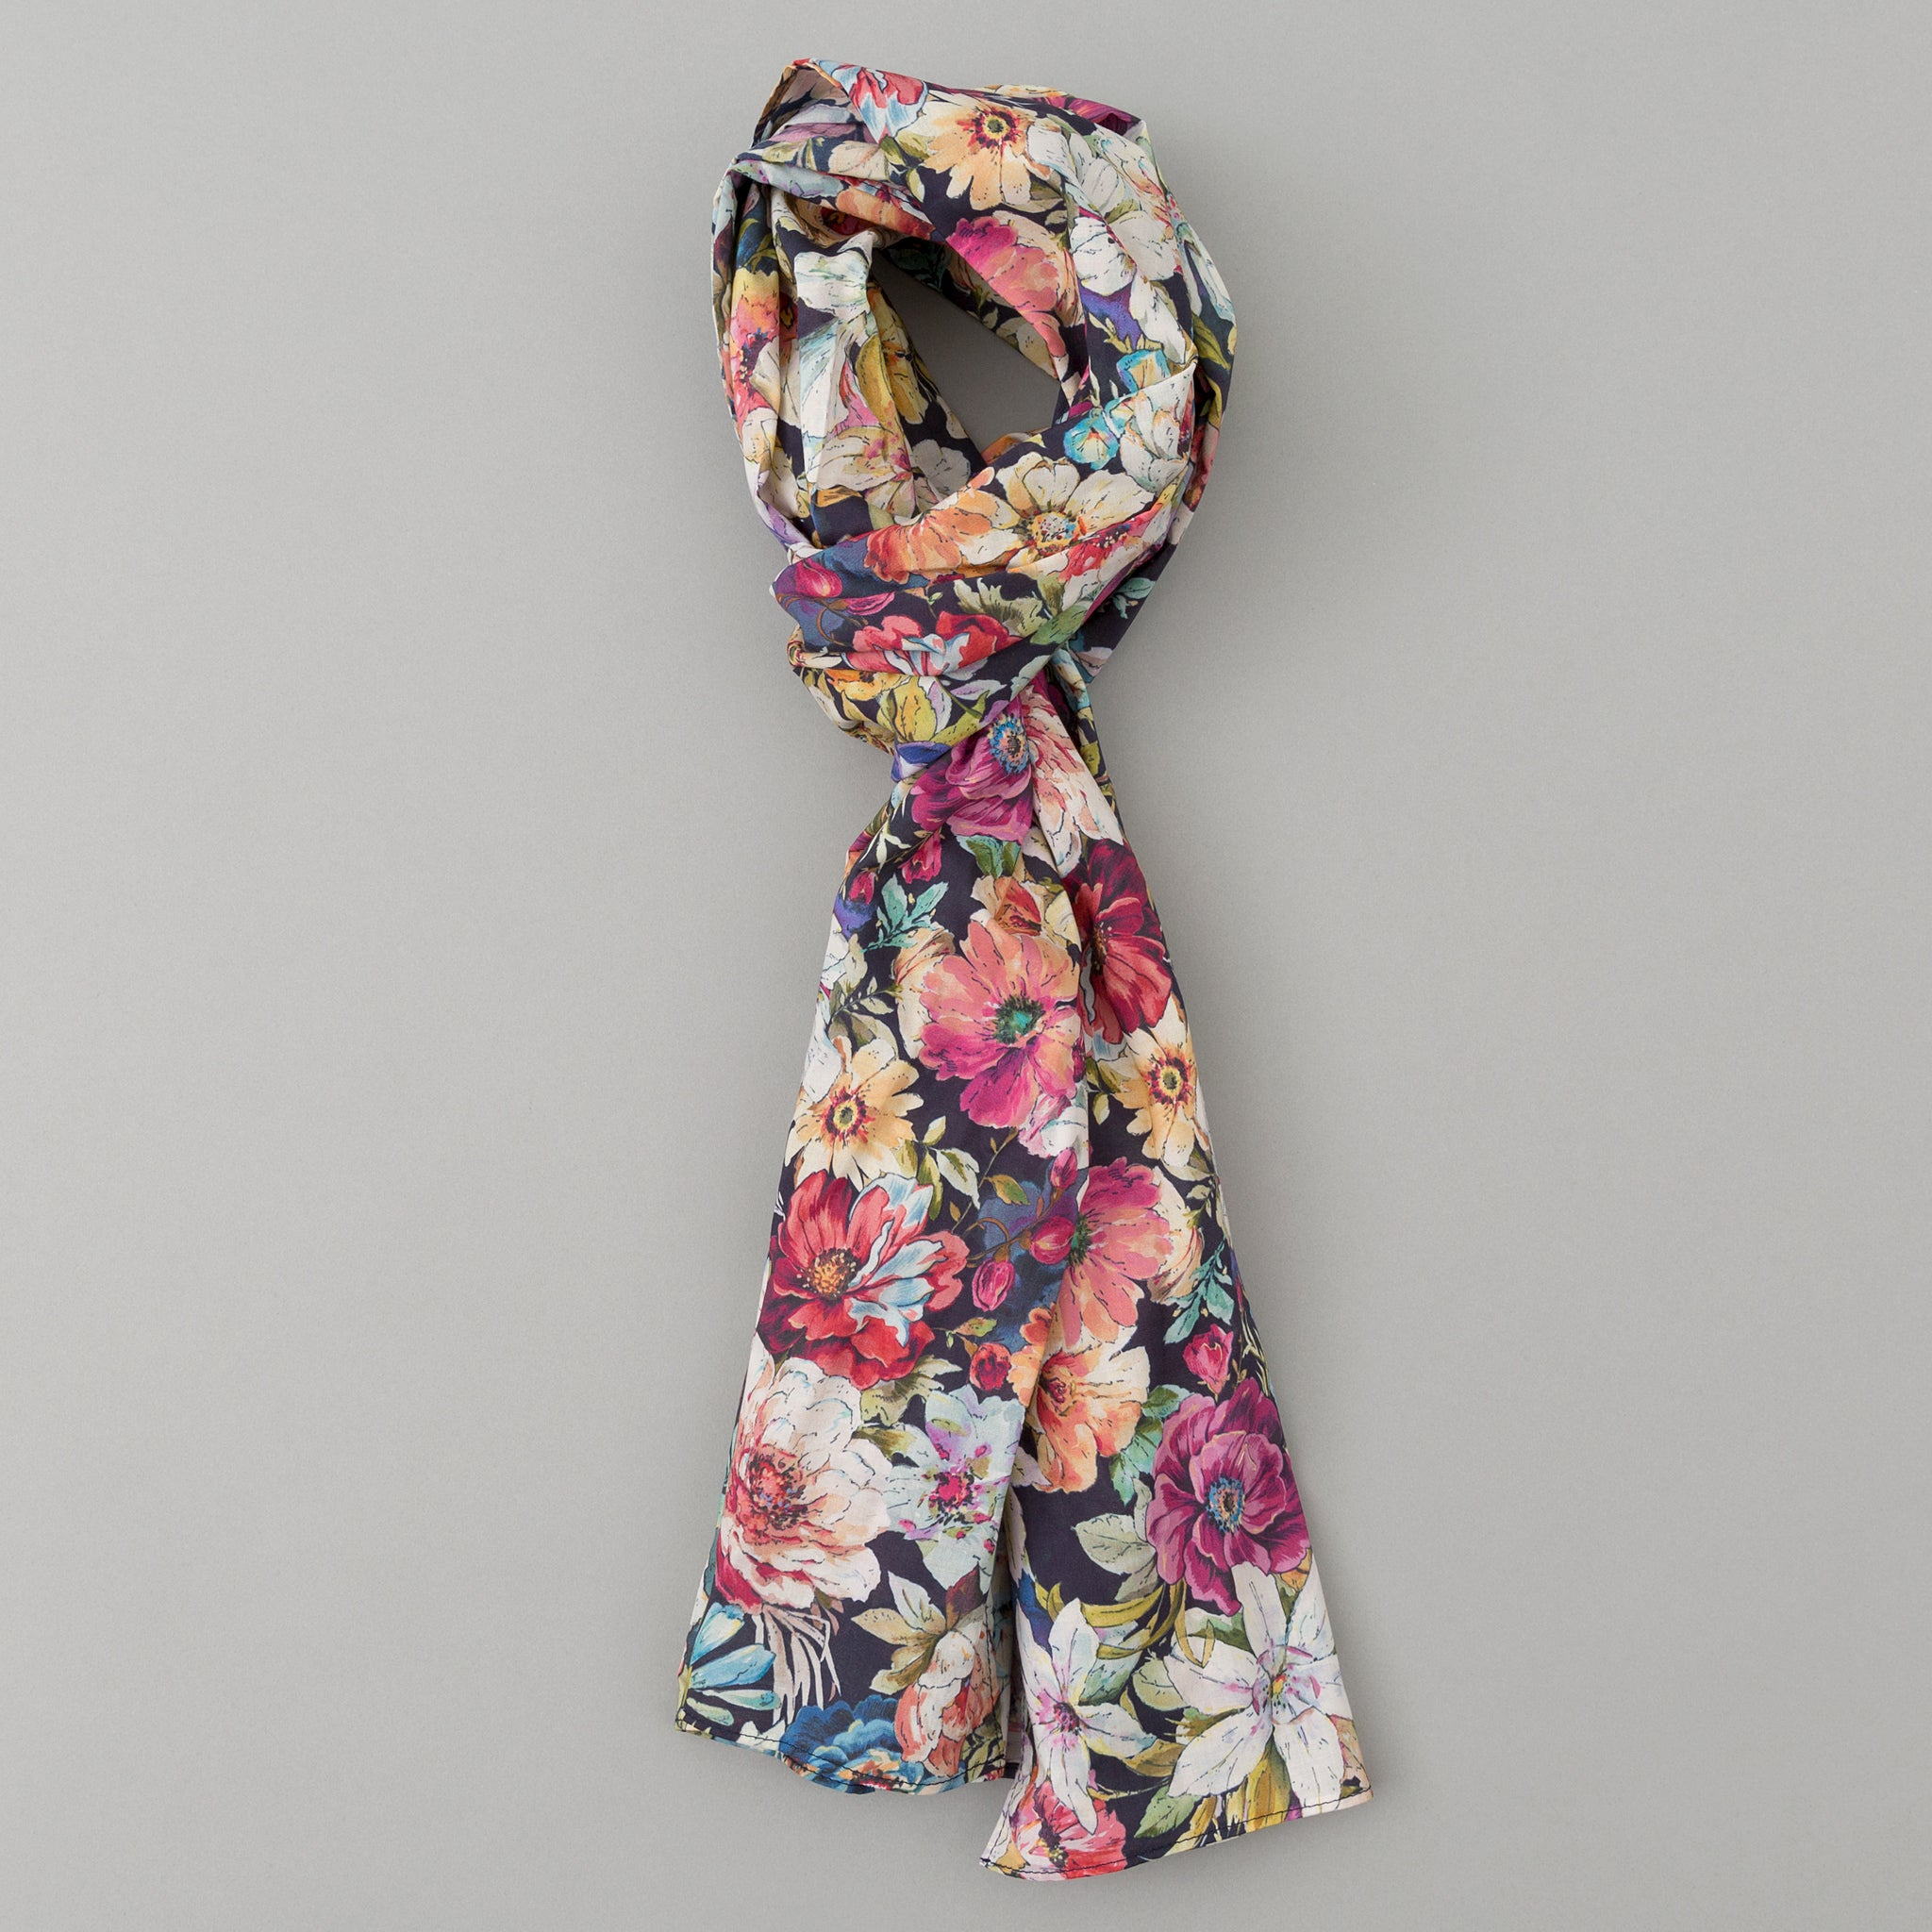 The Hill-Side - Lightweight Big Flowers Print Scarf, Multicolor - SC1-494 - image 1